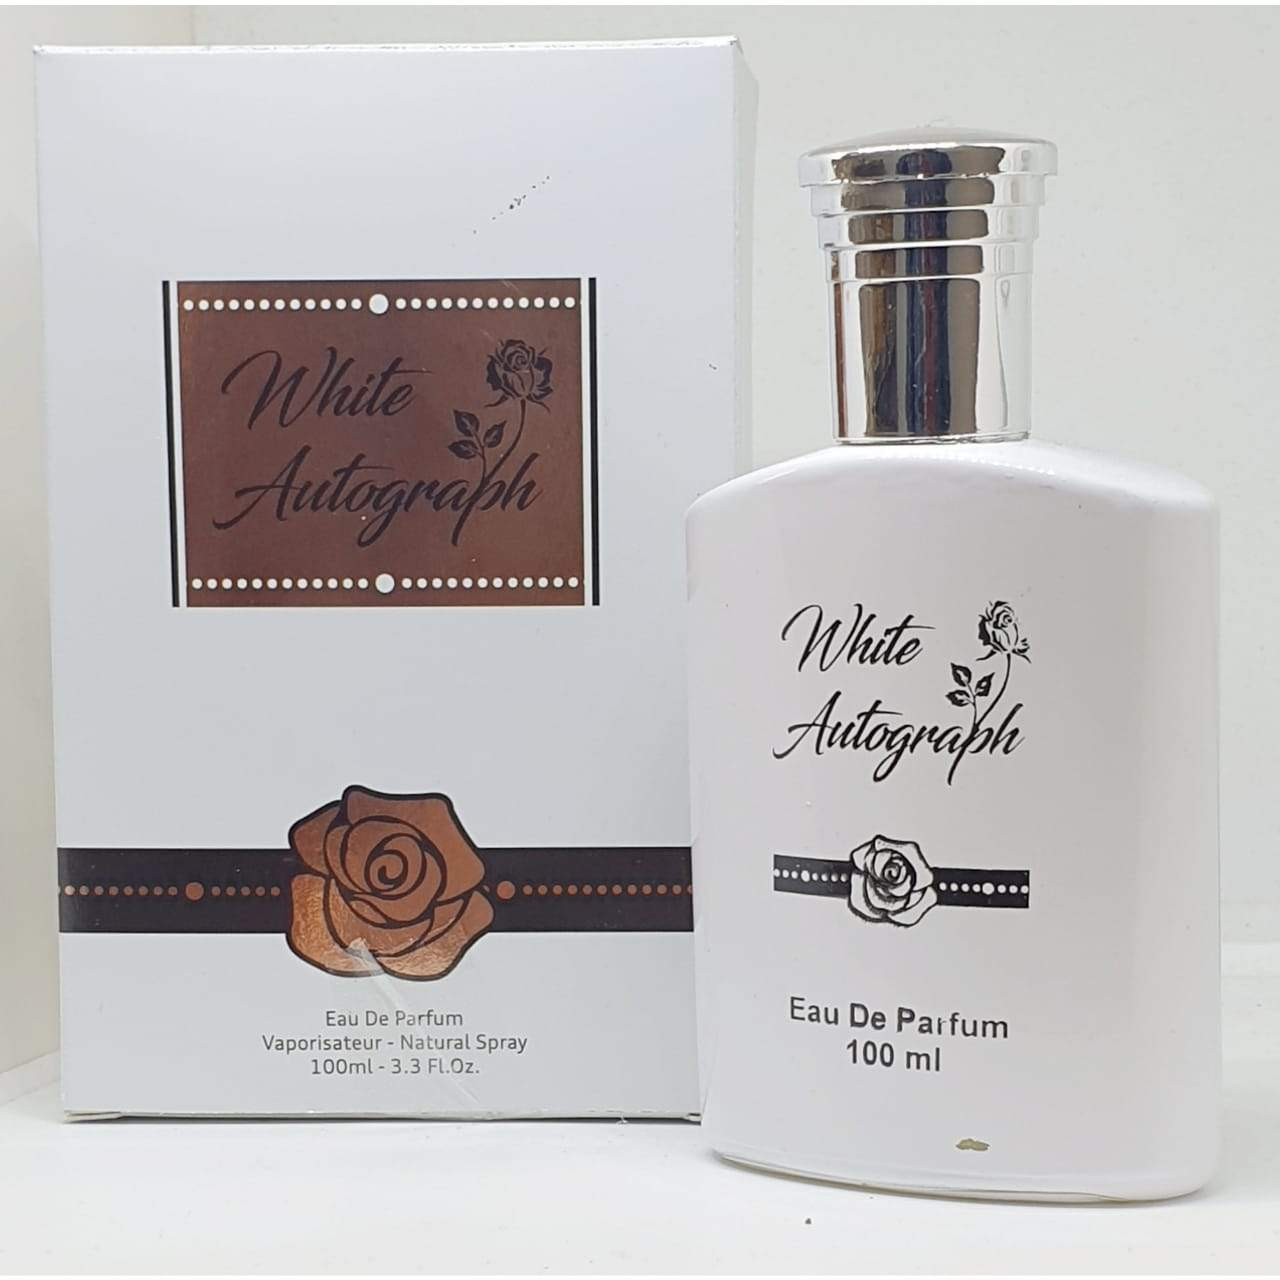 Adil qadri White Autograph  Perfume spray  100 ml.